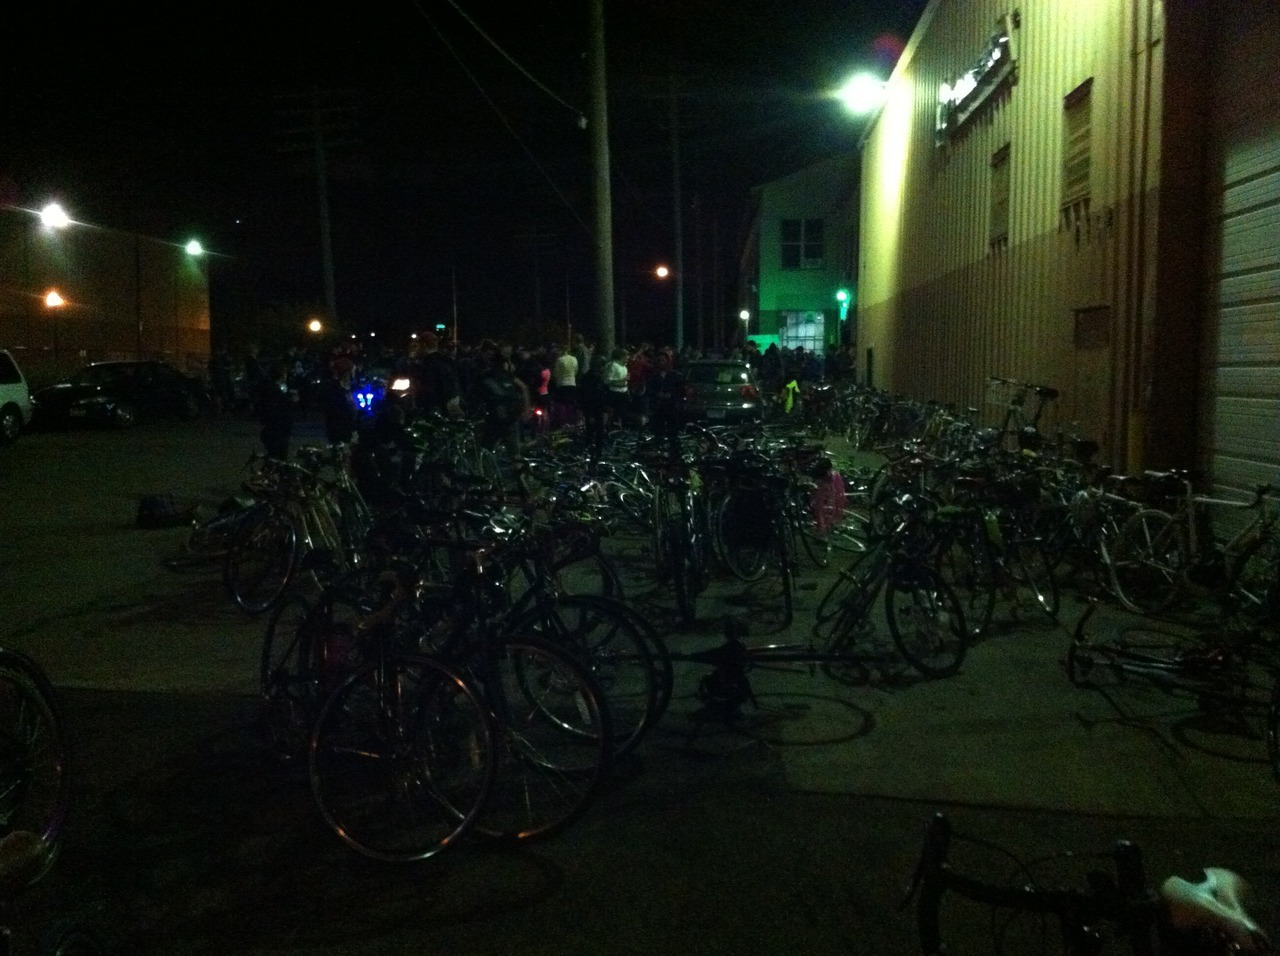 MPLS knows how to bike-party. BABES IN BIKELAND 6!